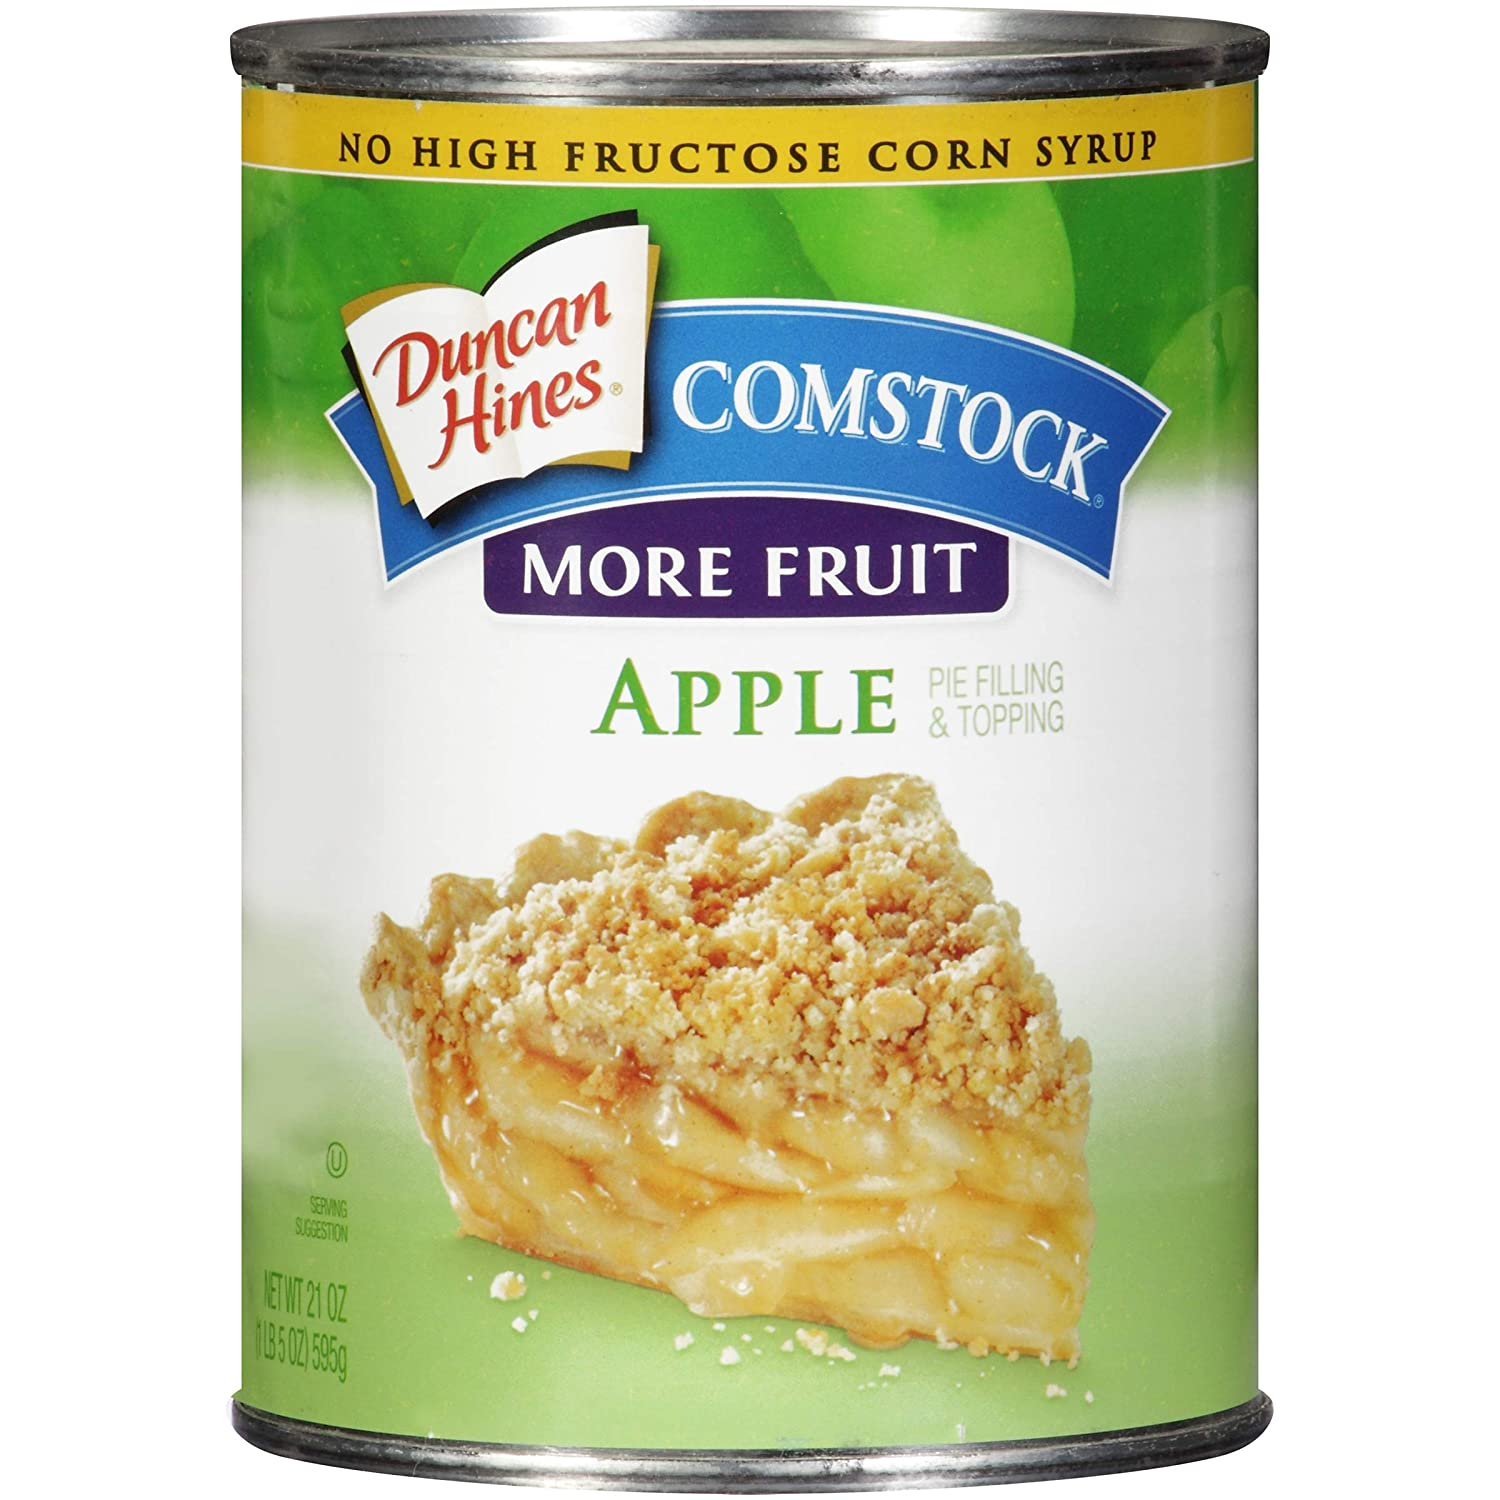 New Orleans Mall Comstock Outlet ☆ Free Shipping More Fruit Pie Filling Topping 3 21 P Apple Ounce -